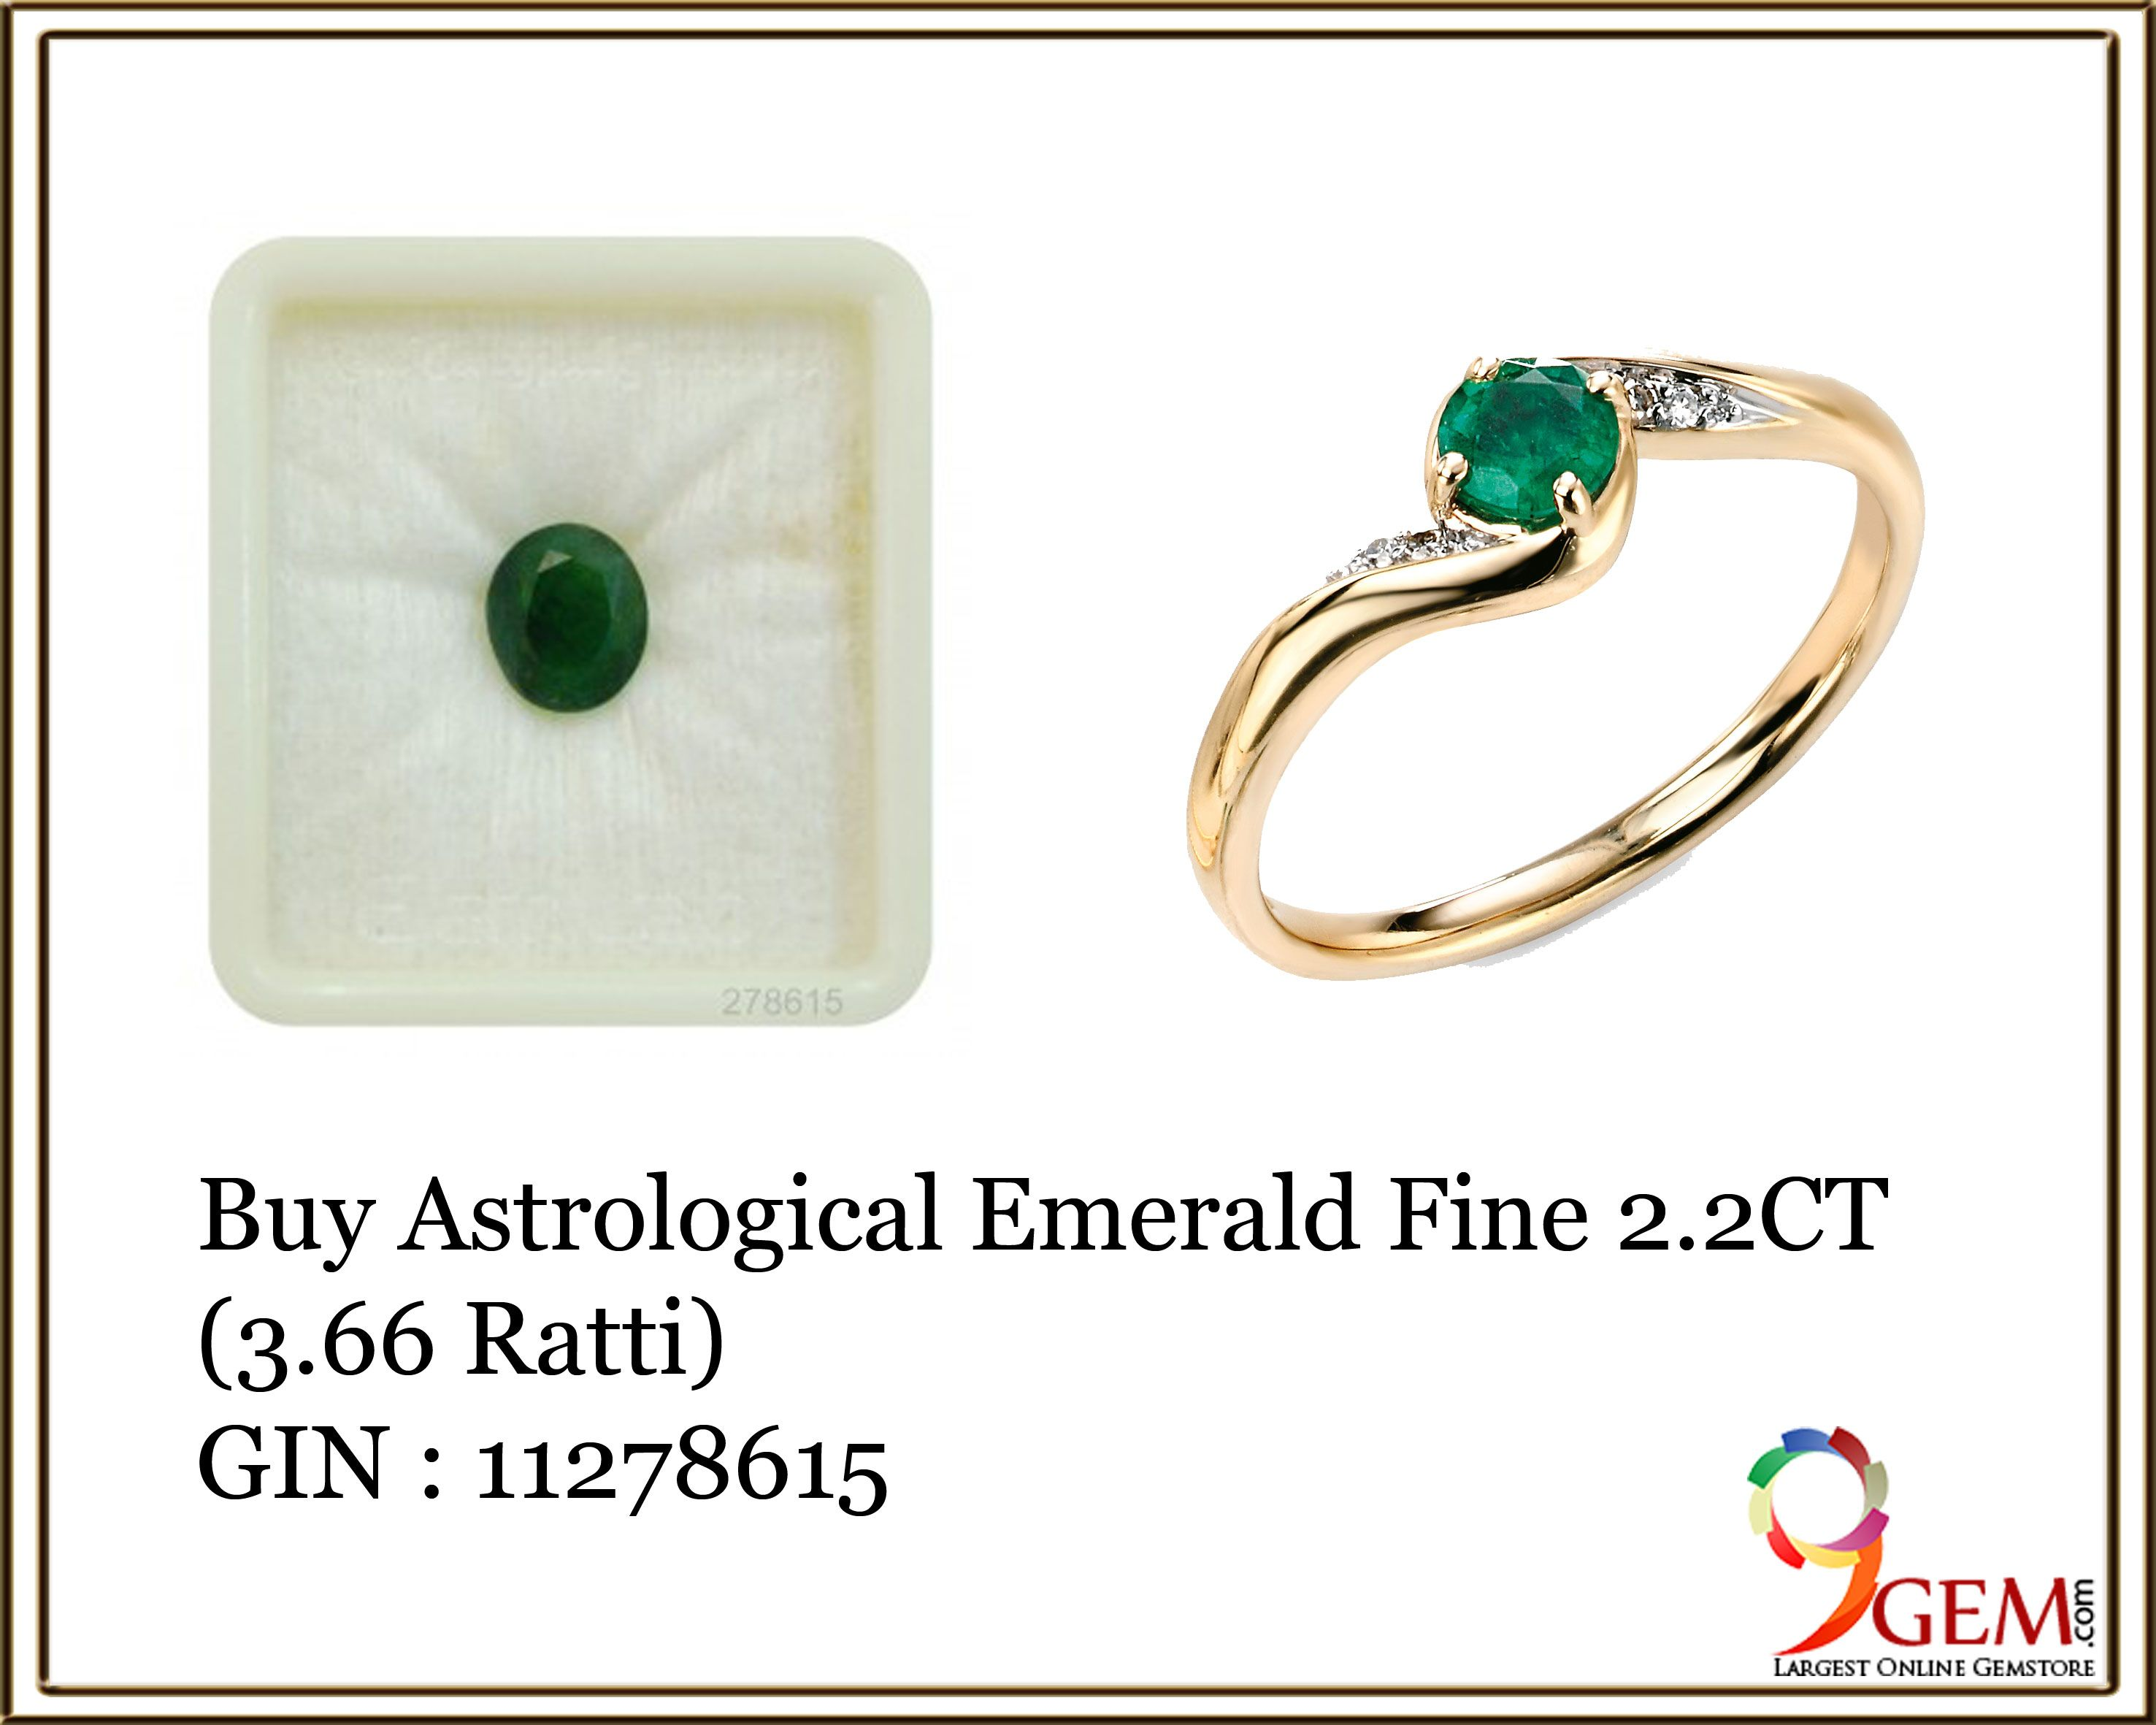 online price gemstone best zambian panna at origin natural stone carat emerald